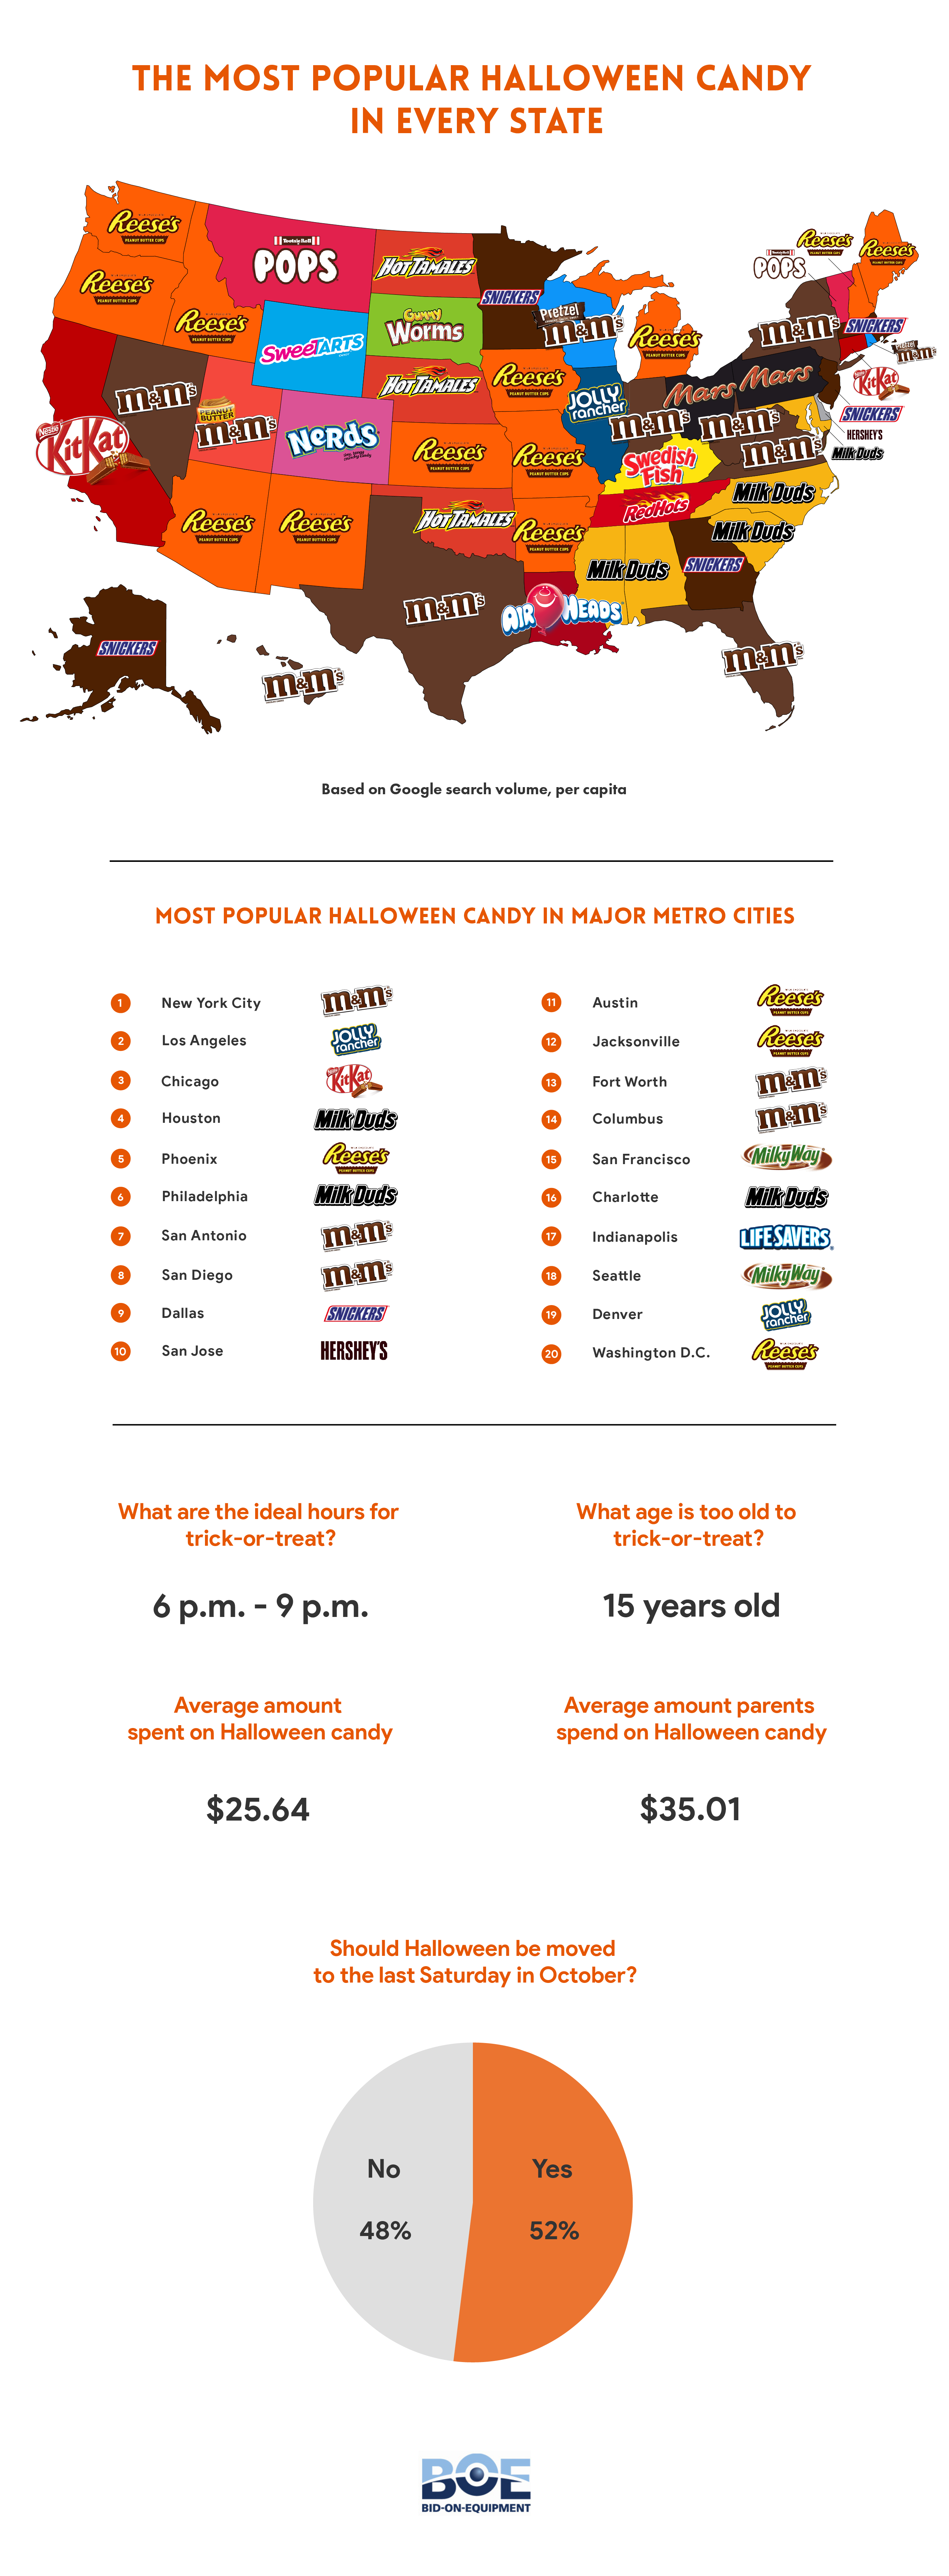 Most Popular Halloween Candy in Every State